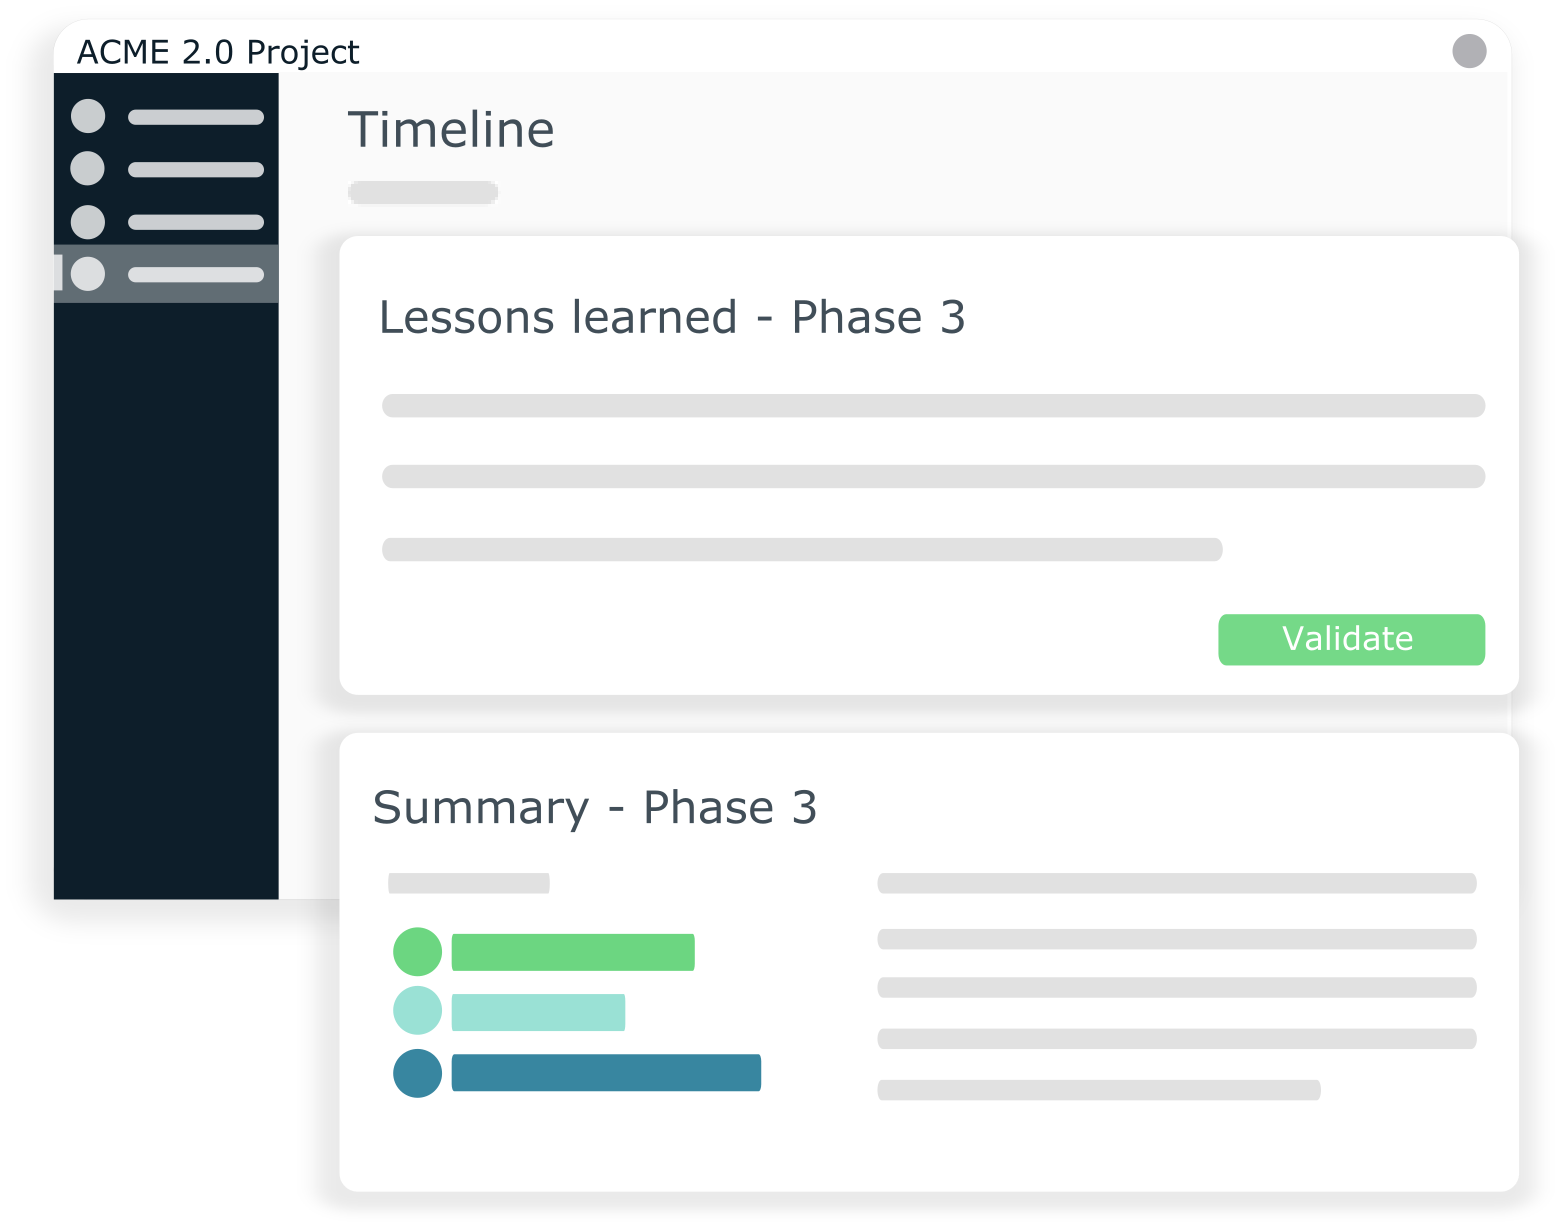 Gather lessons learned and document all important project events in your timeline with Steerio